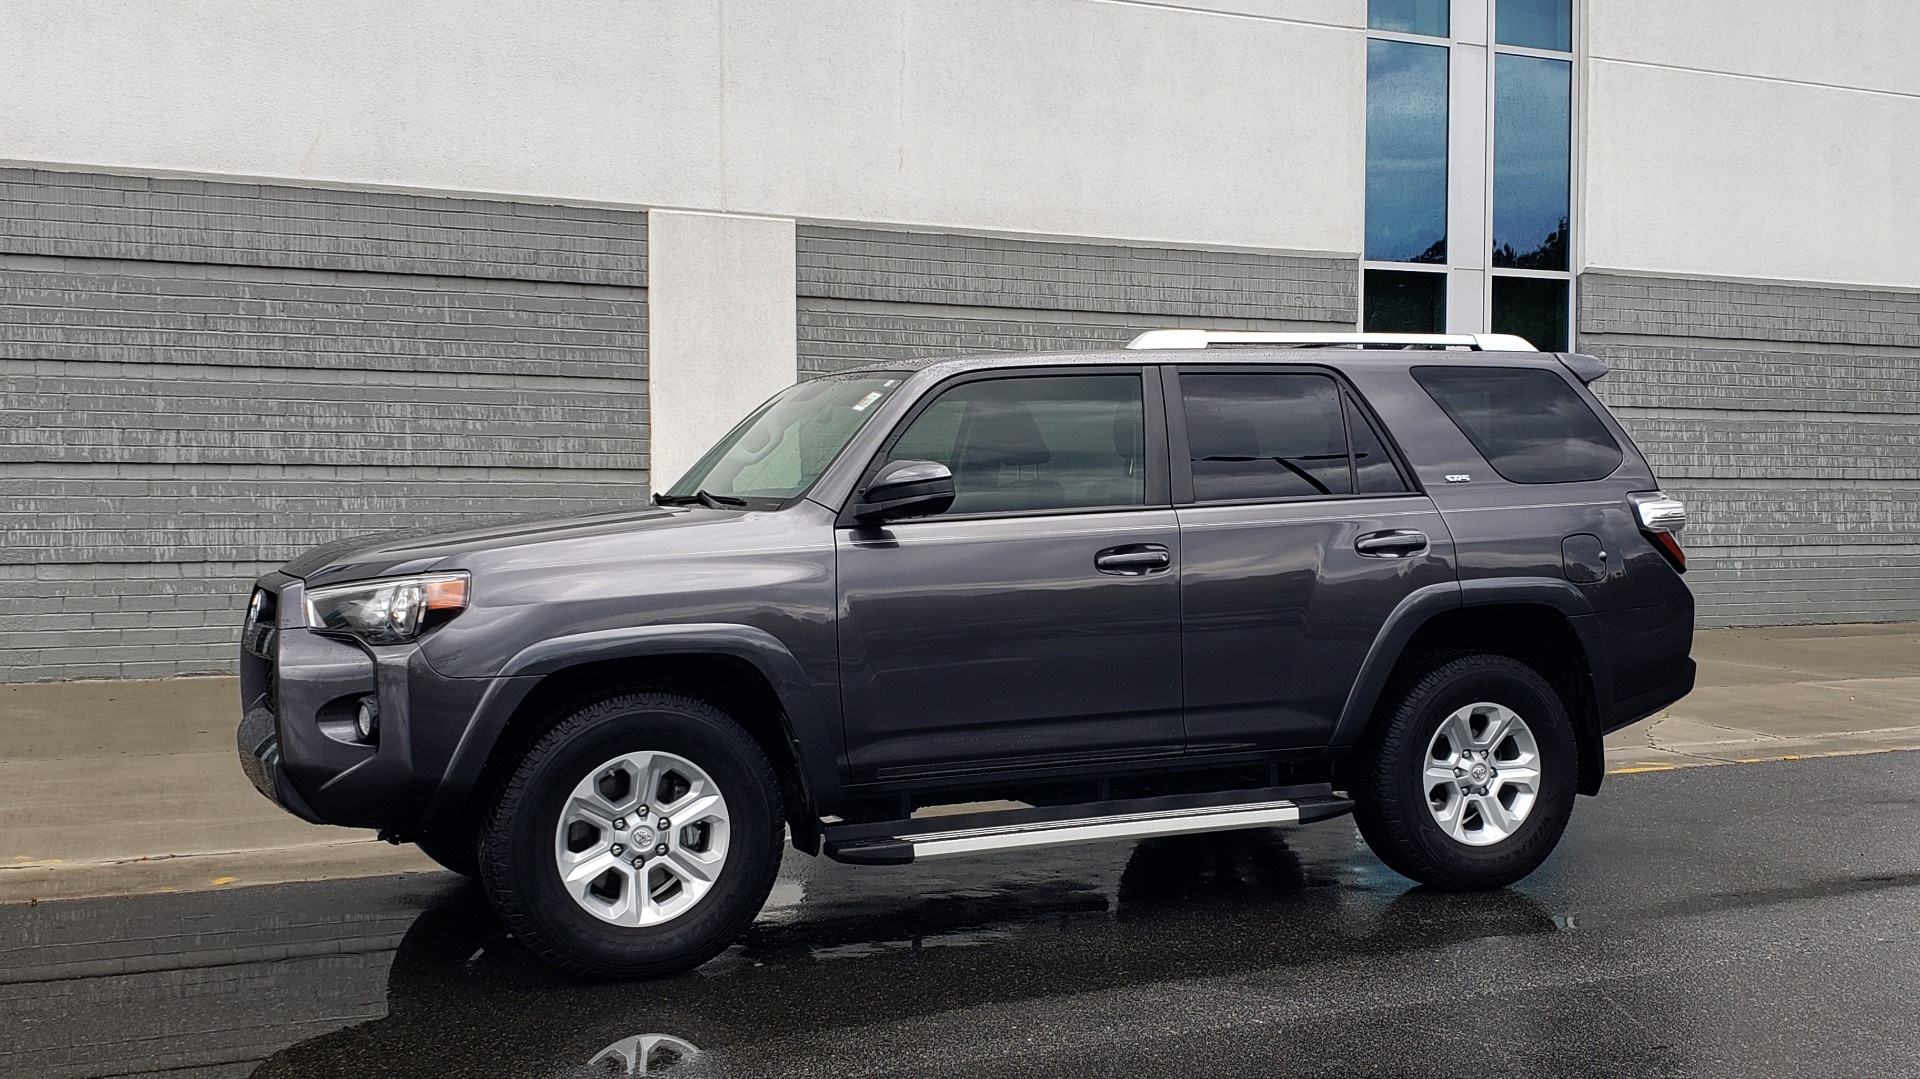 Used 2016 Toyota 4RUNNER 4X4 SR5 V6 / ENTUNE PREMIUM AUDIO W/NAVIGATION for sale $35,995 at Formula Imports in Charlotte NC 28227 4